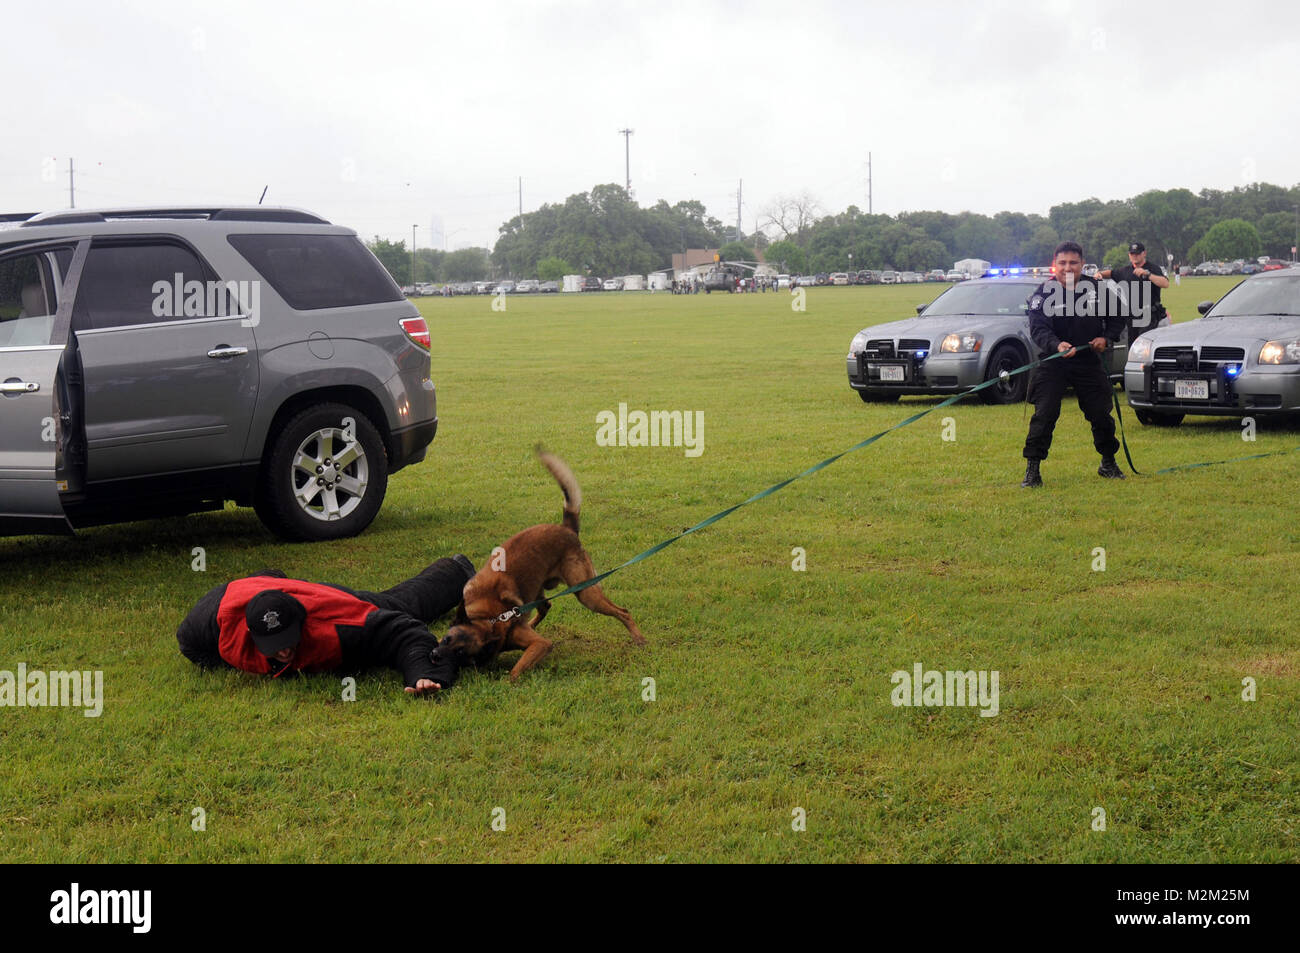 Hernandez holds on as Miletonde subdues a tricky suspect. 20100417-A-1403C-009 by Texas Military Department - Stock Image